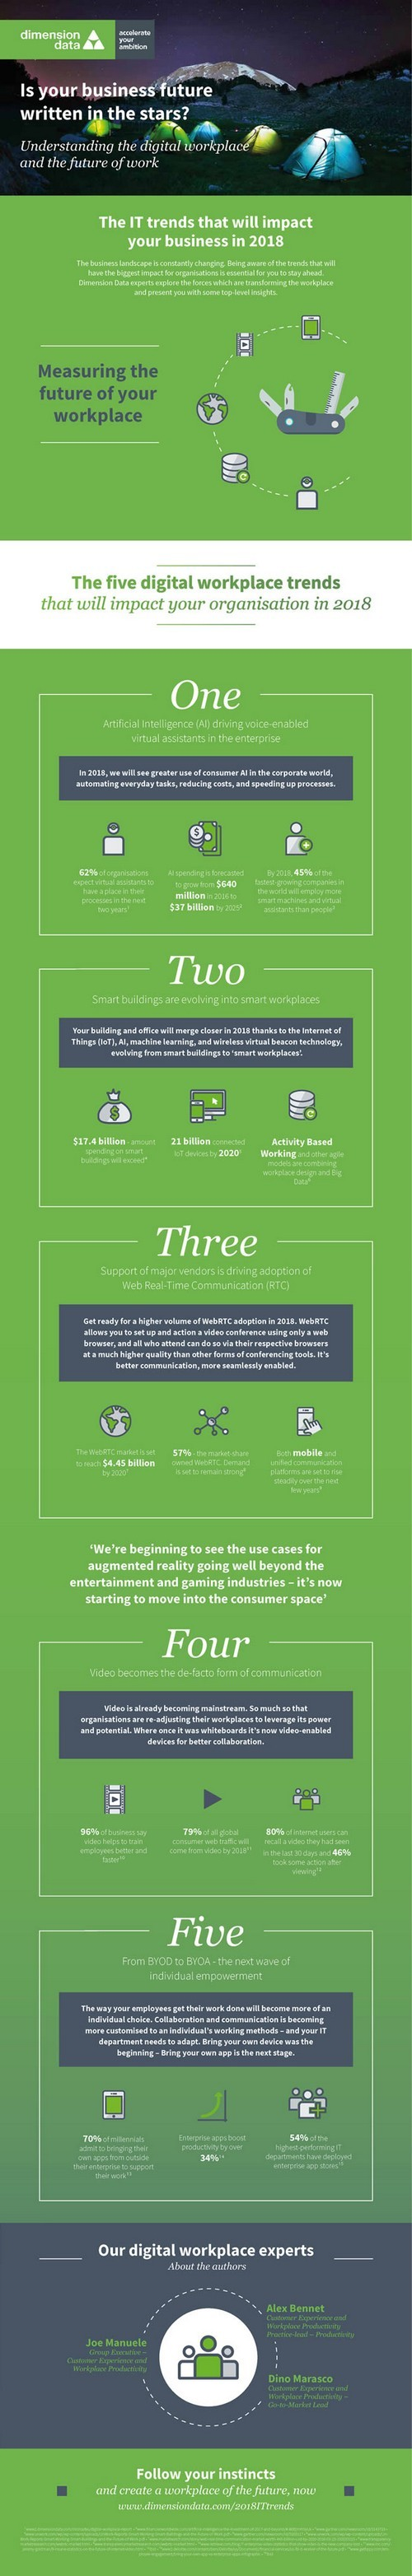 AI (virtual agents), smart buildings (with AI and IoT), Web RTC, video and BYOA (Bring Your Own App) in the top IT trends for the digital smart workplace according to Dimension Data - full infographic in PDF